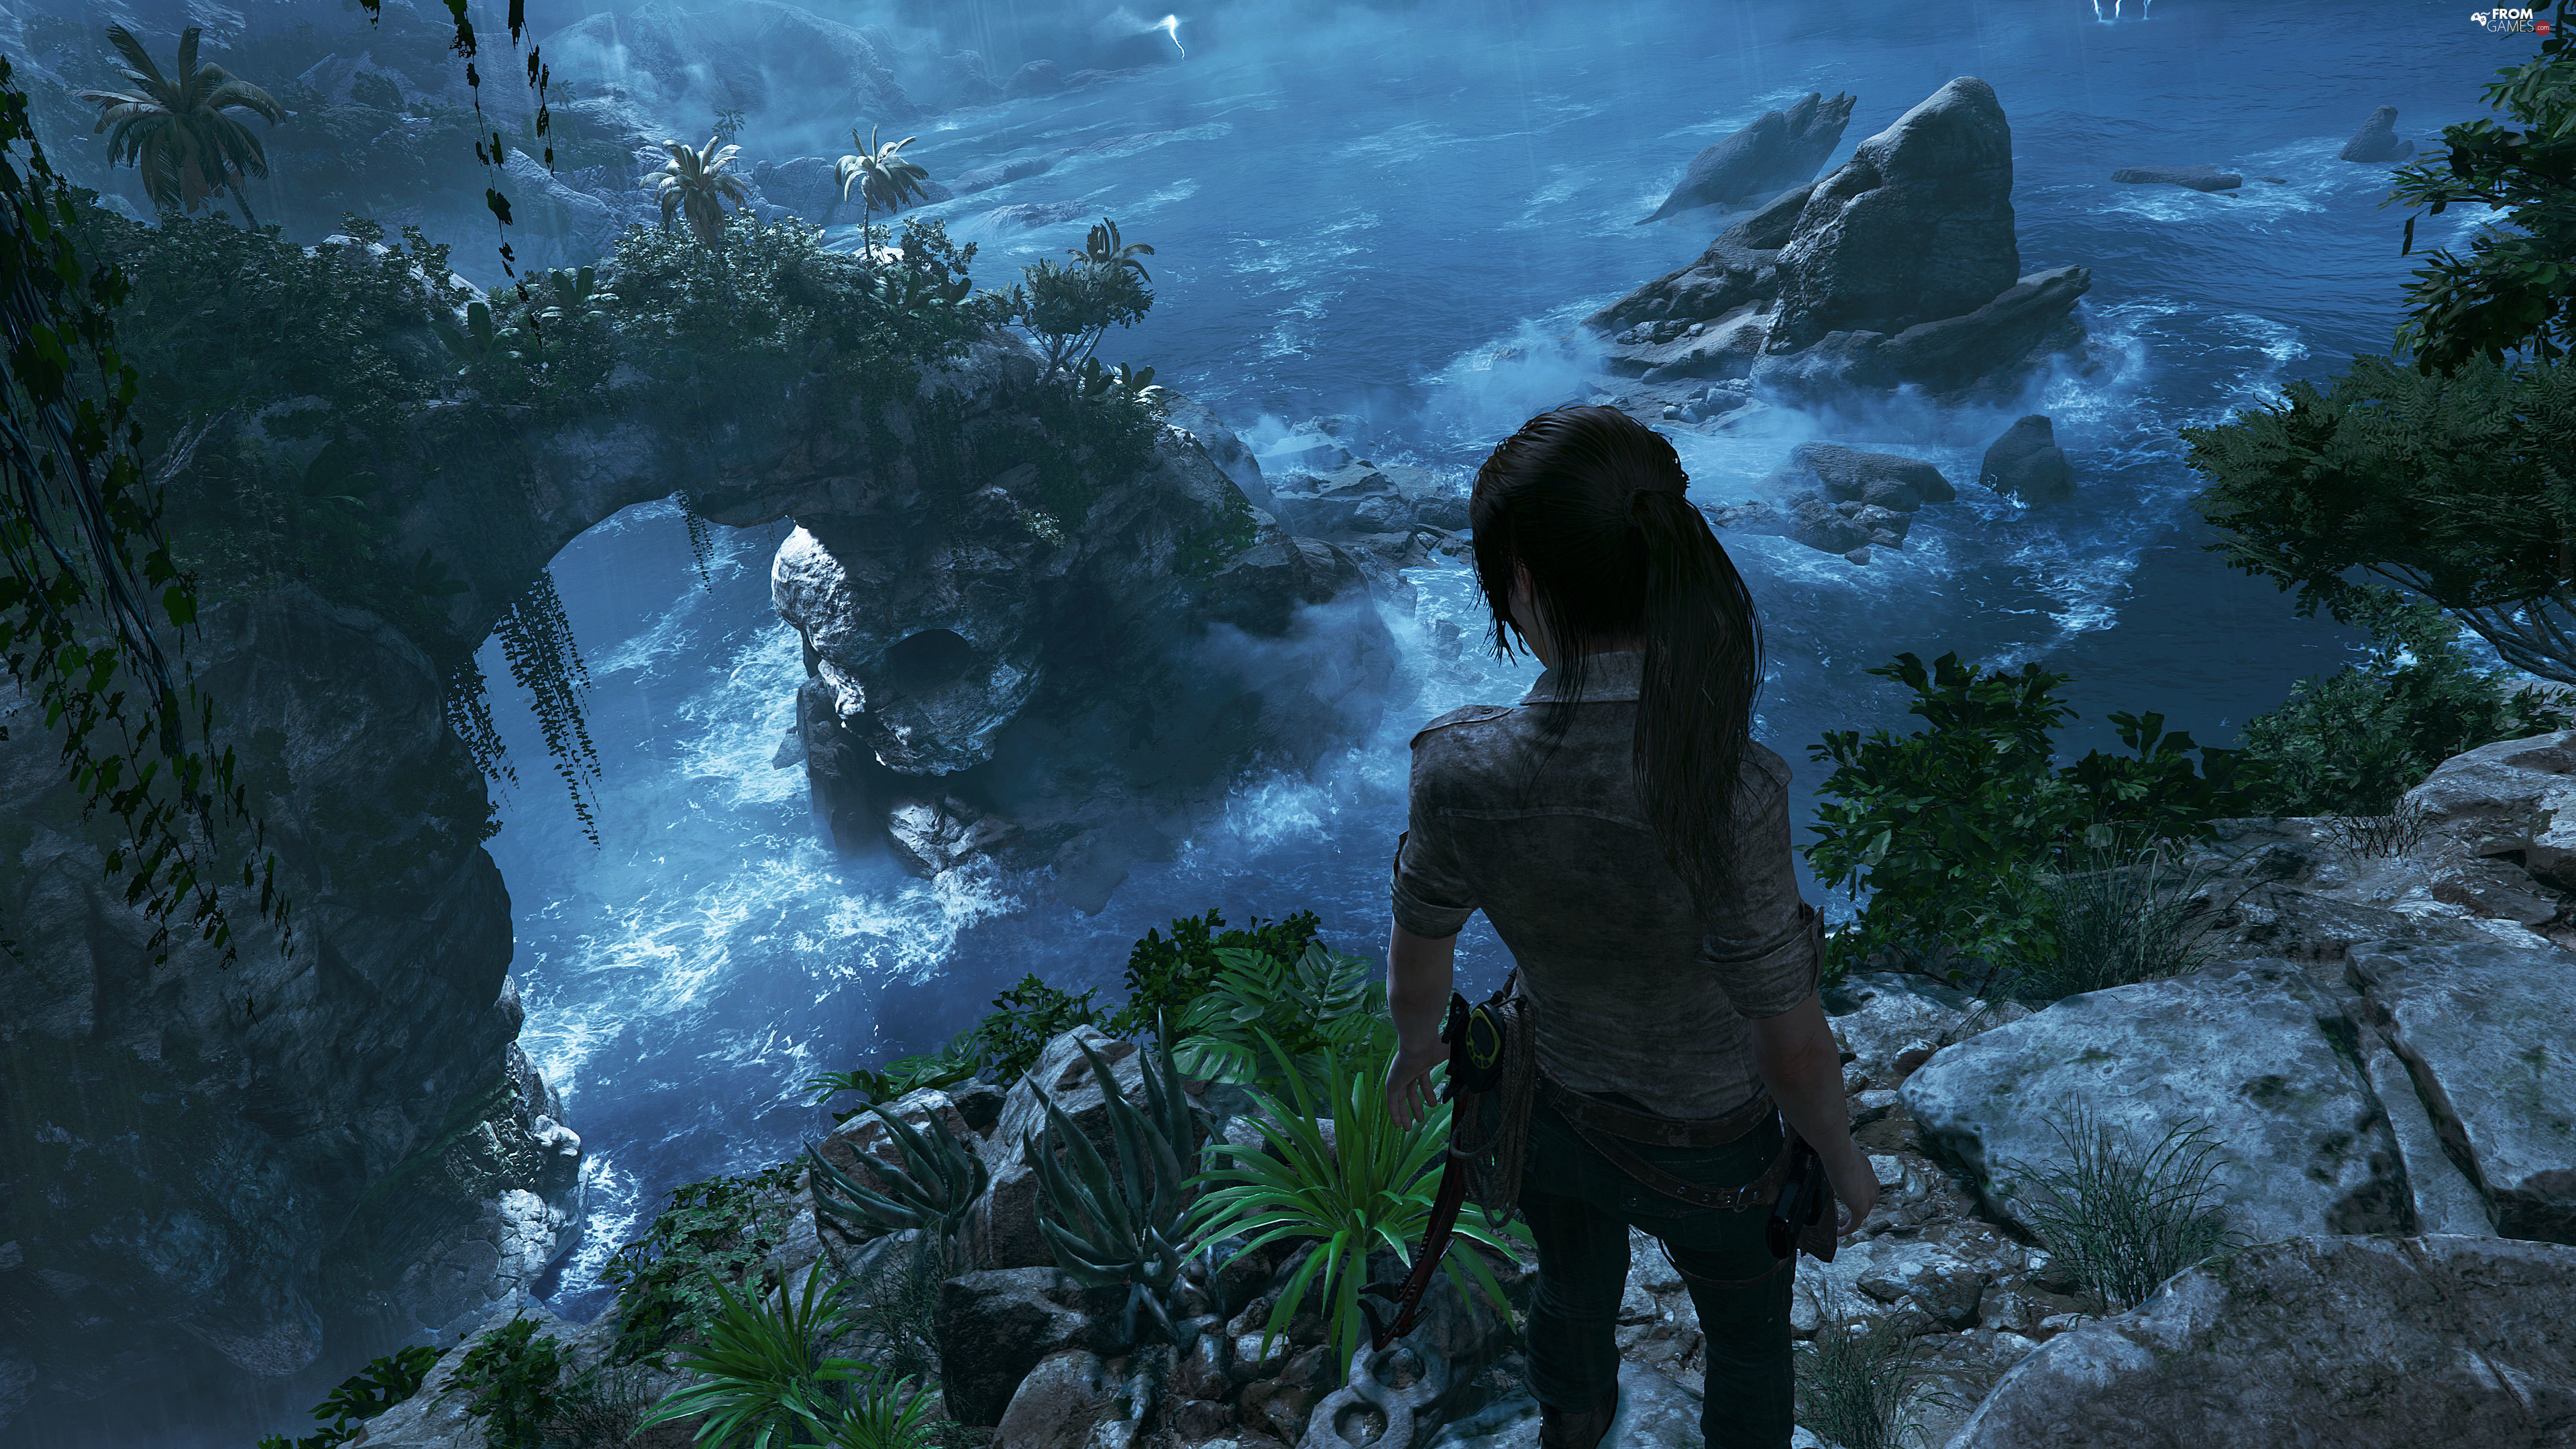 Lara Croft, rocks, Shadow of the Tomb Raider, Tomb Raider 2018, game